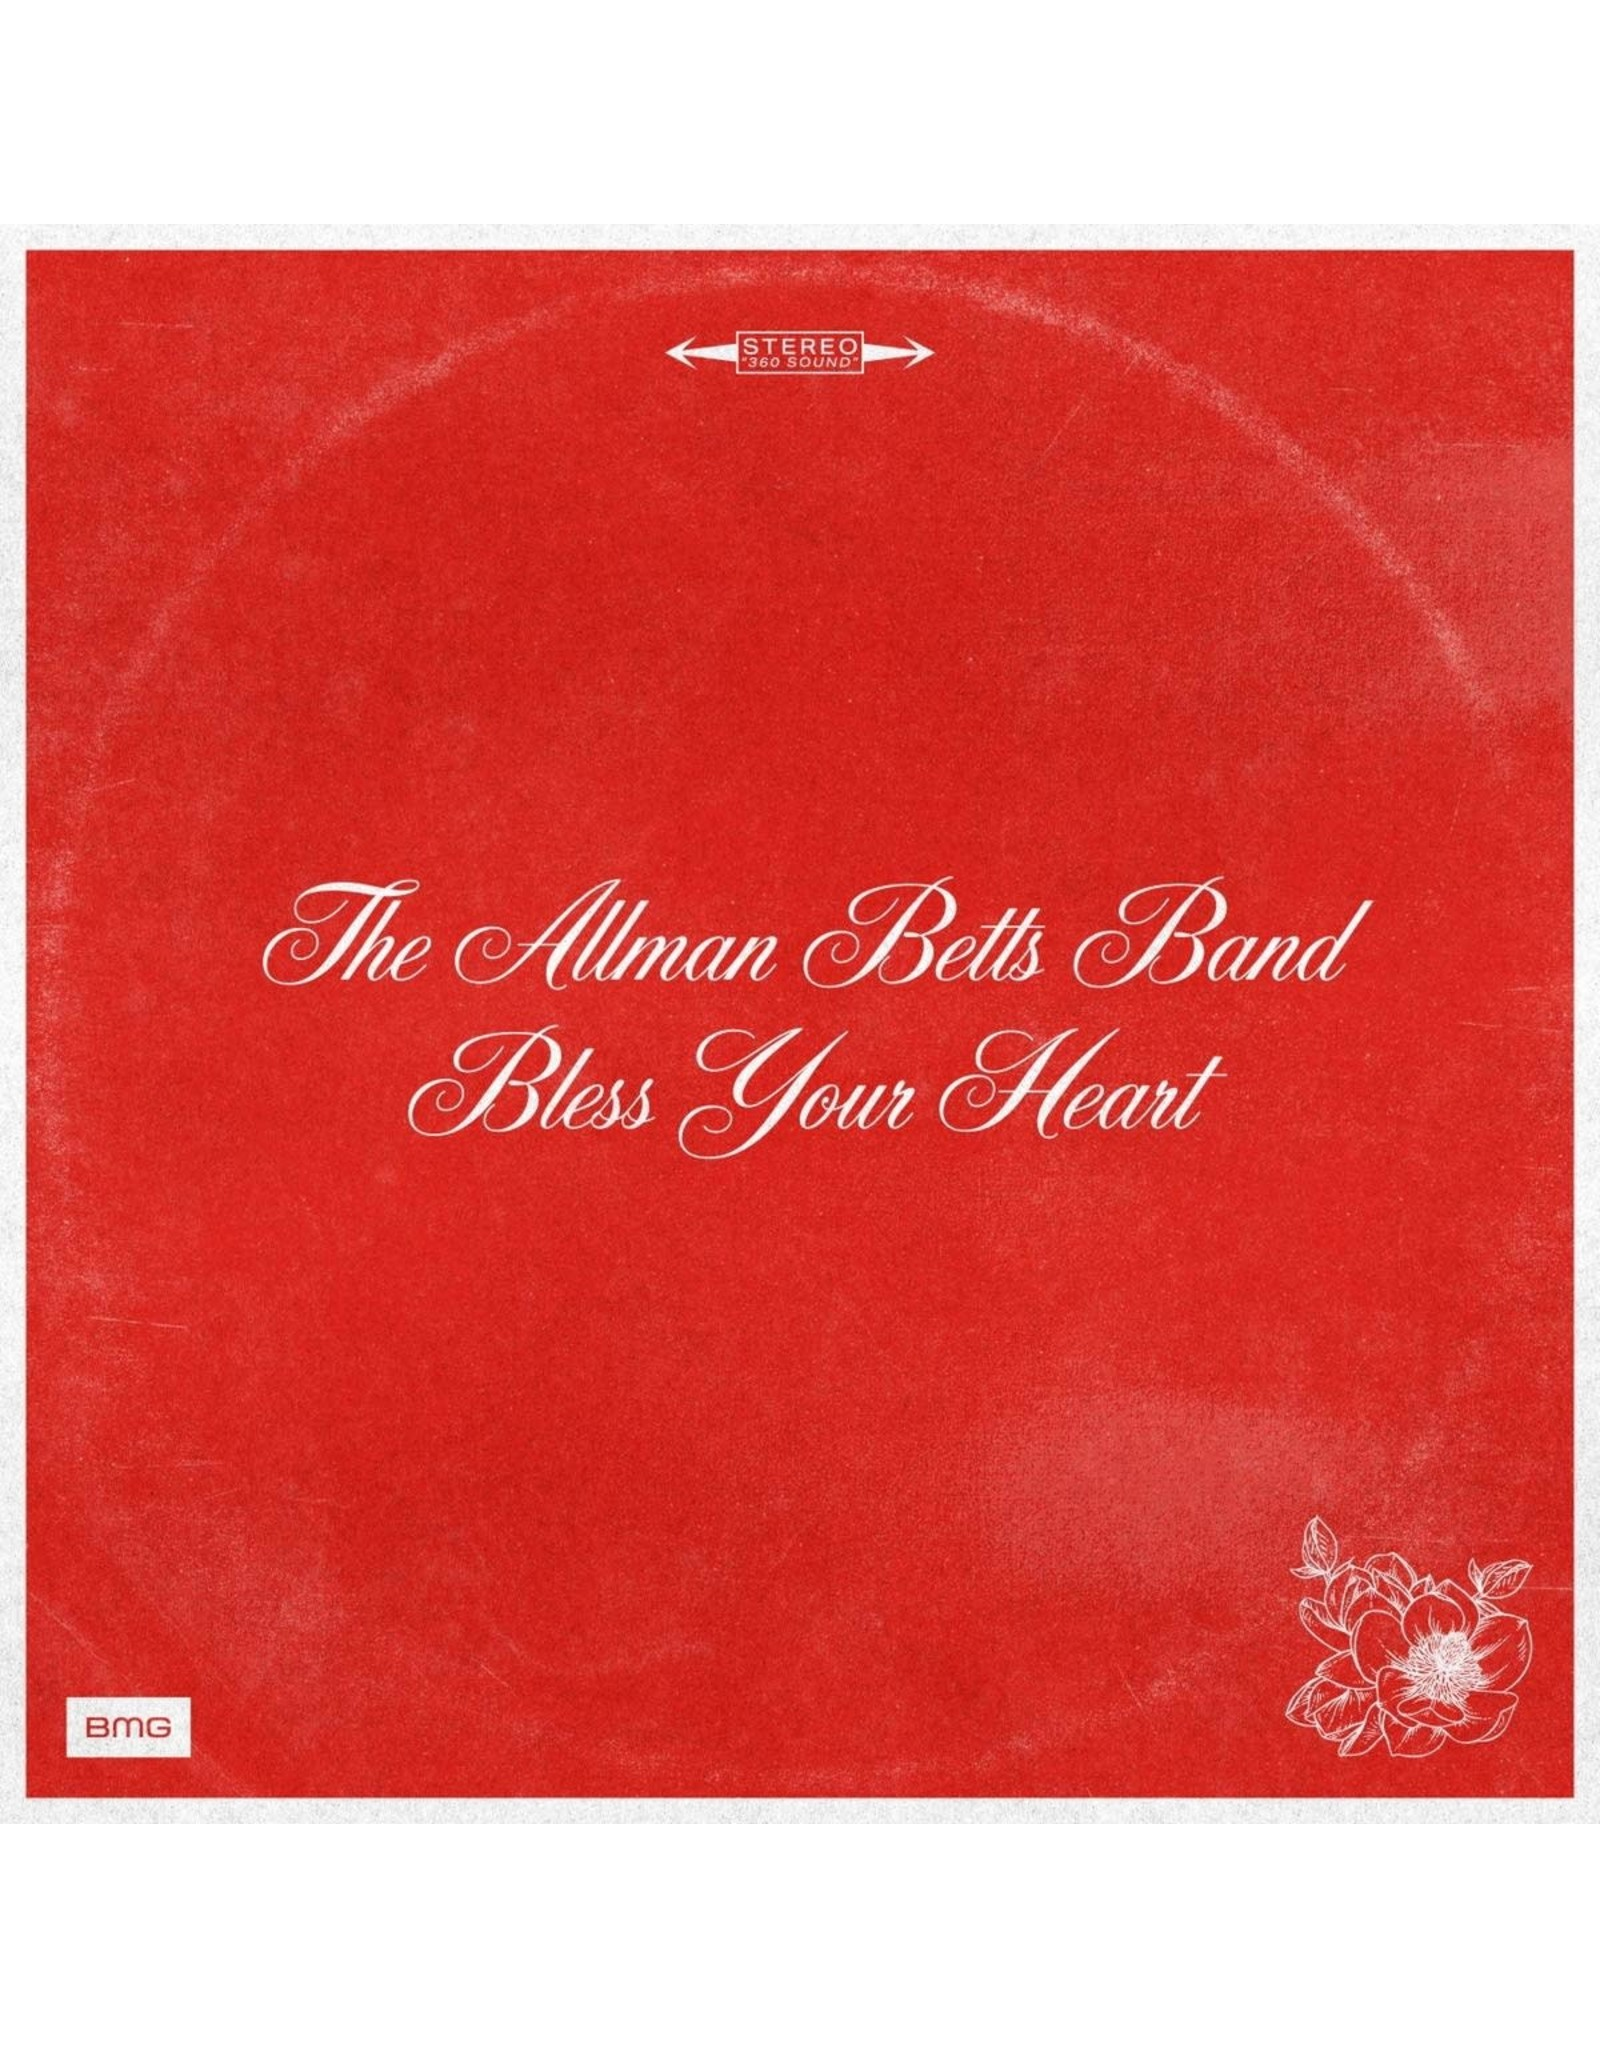 The Allman Betts Band - Bless Your Heart CD